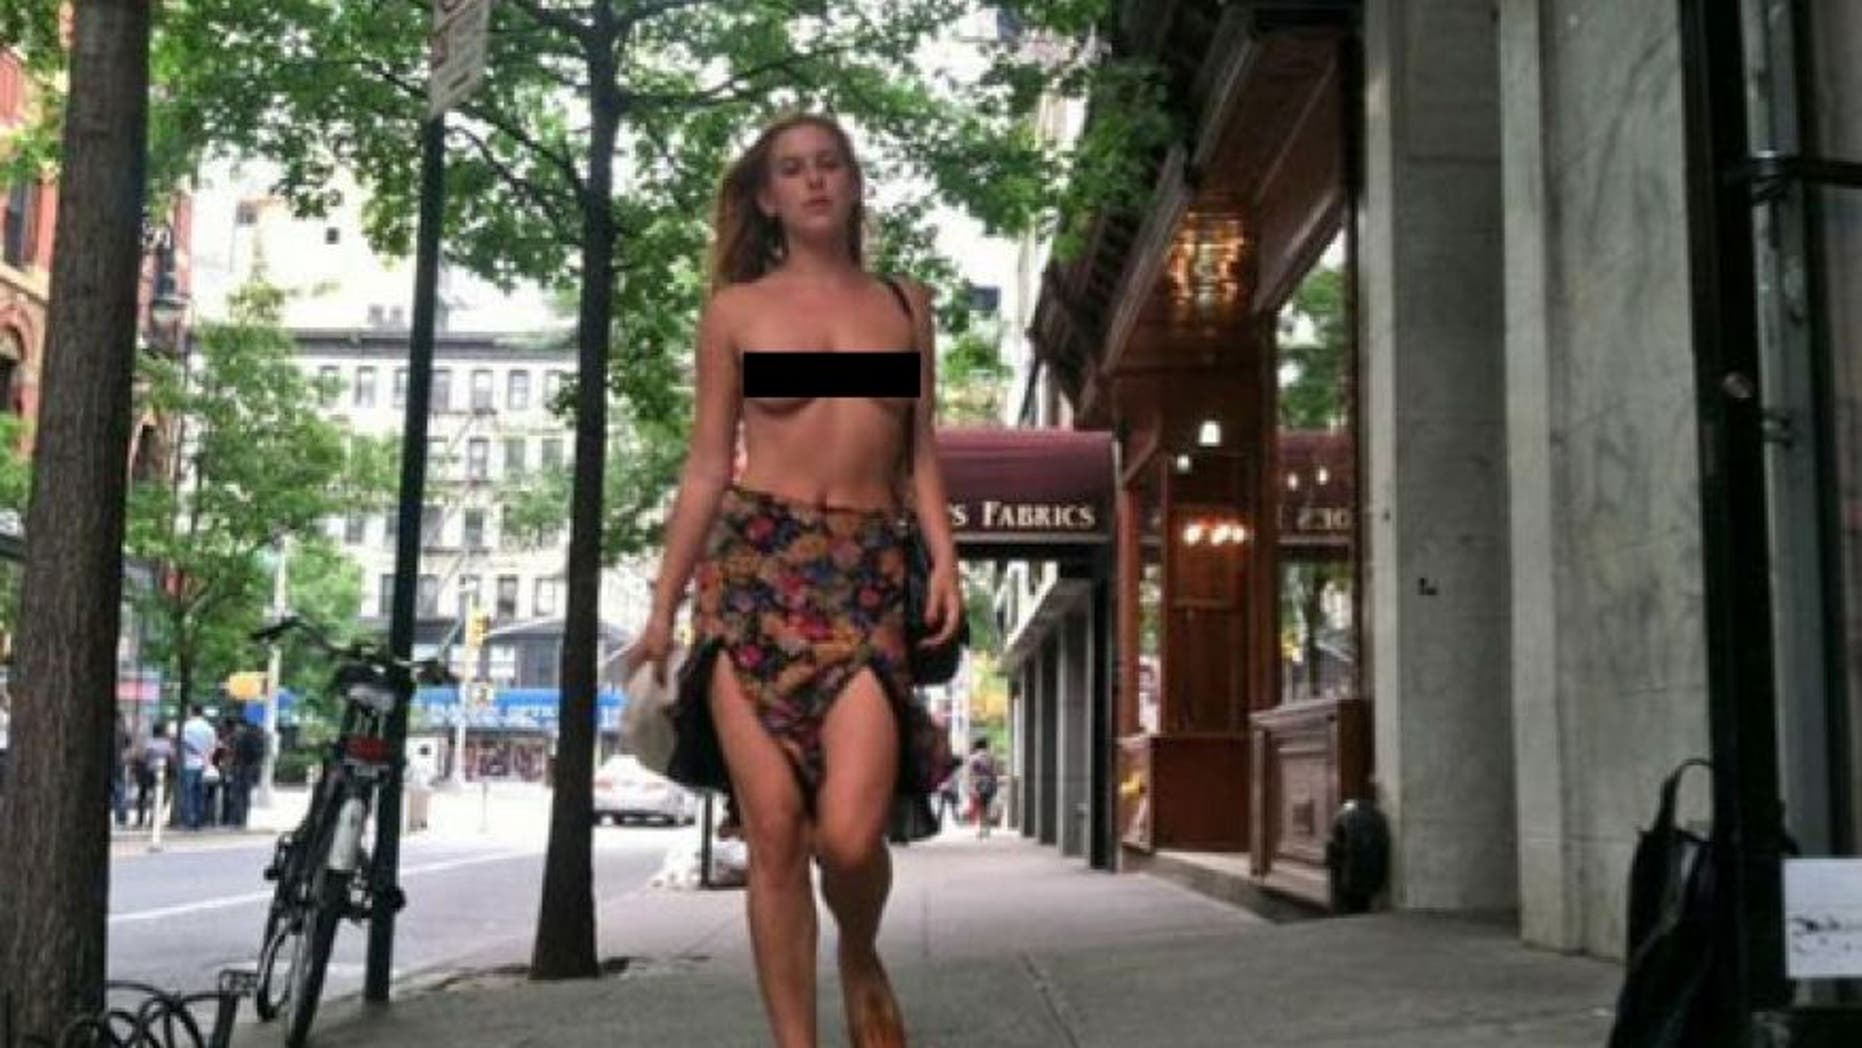 Scout Willis protested Instagram by walking around New York City topless.